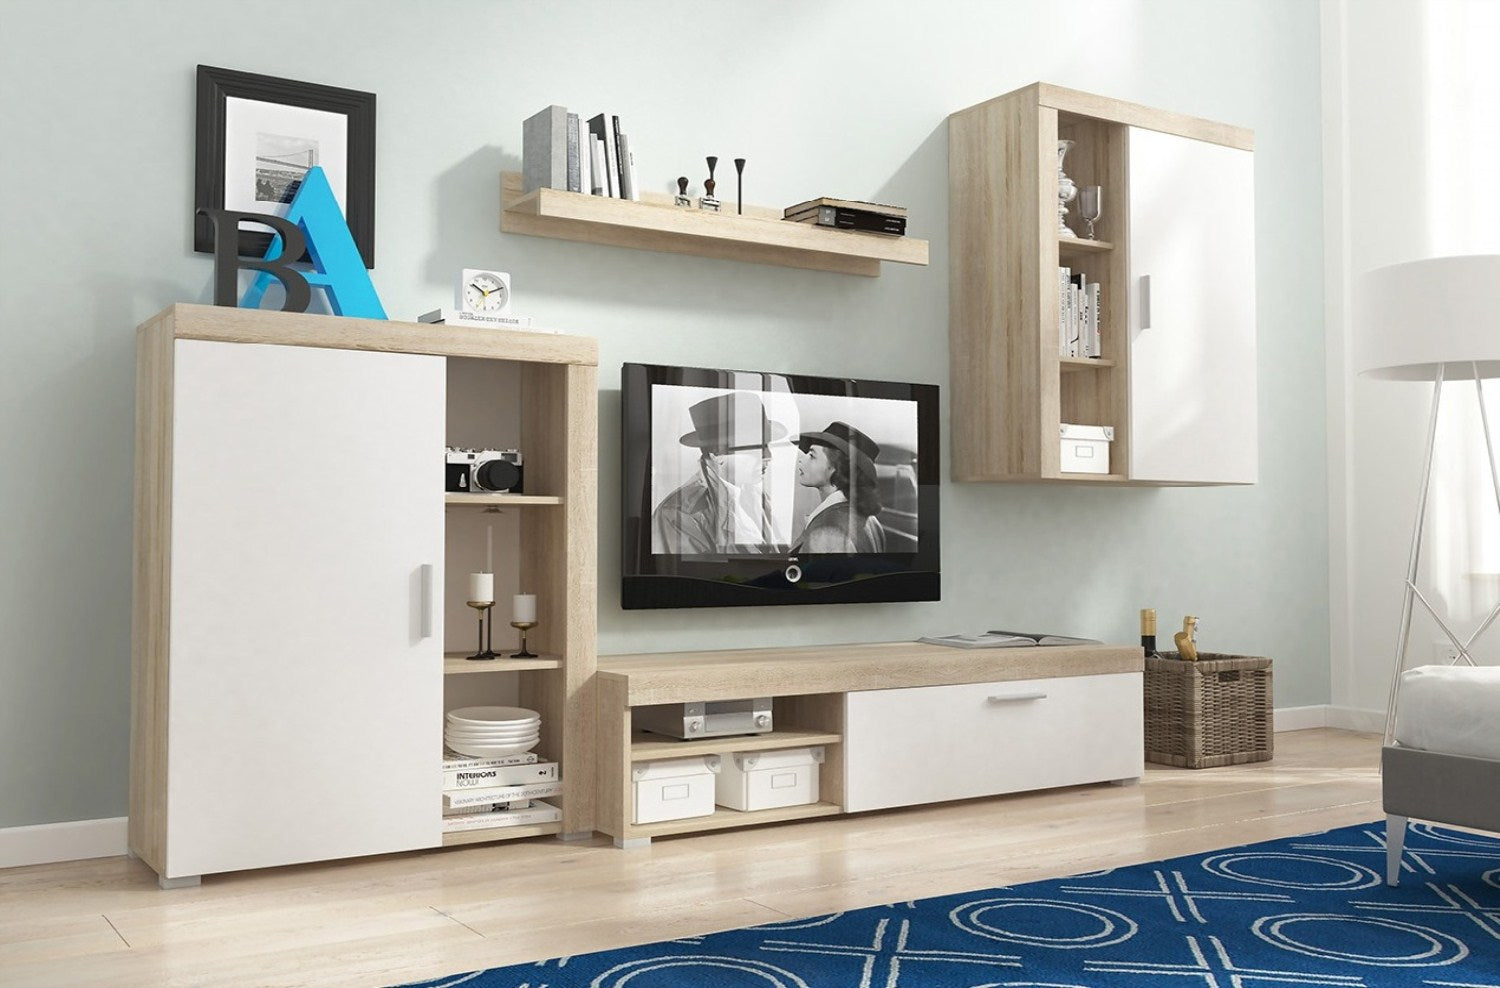 Oliana Living Room Furniture